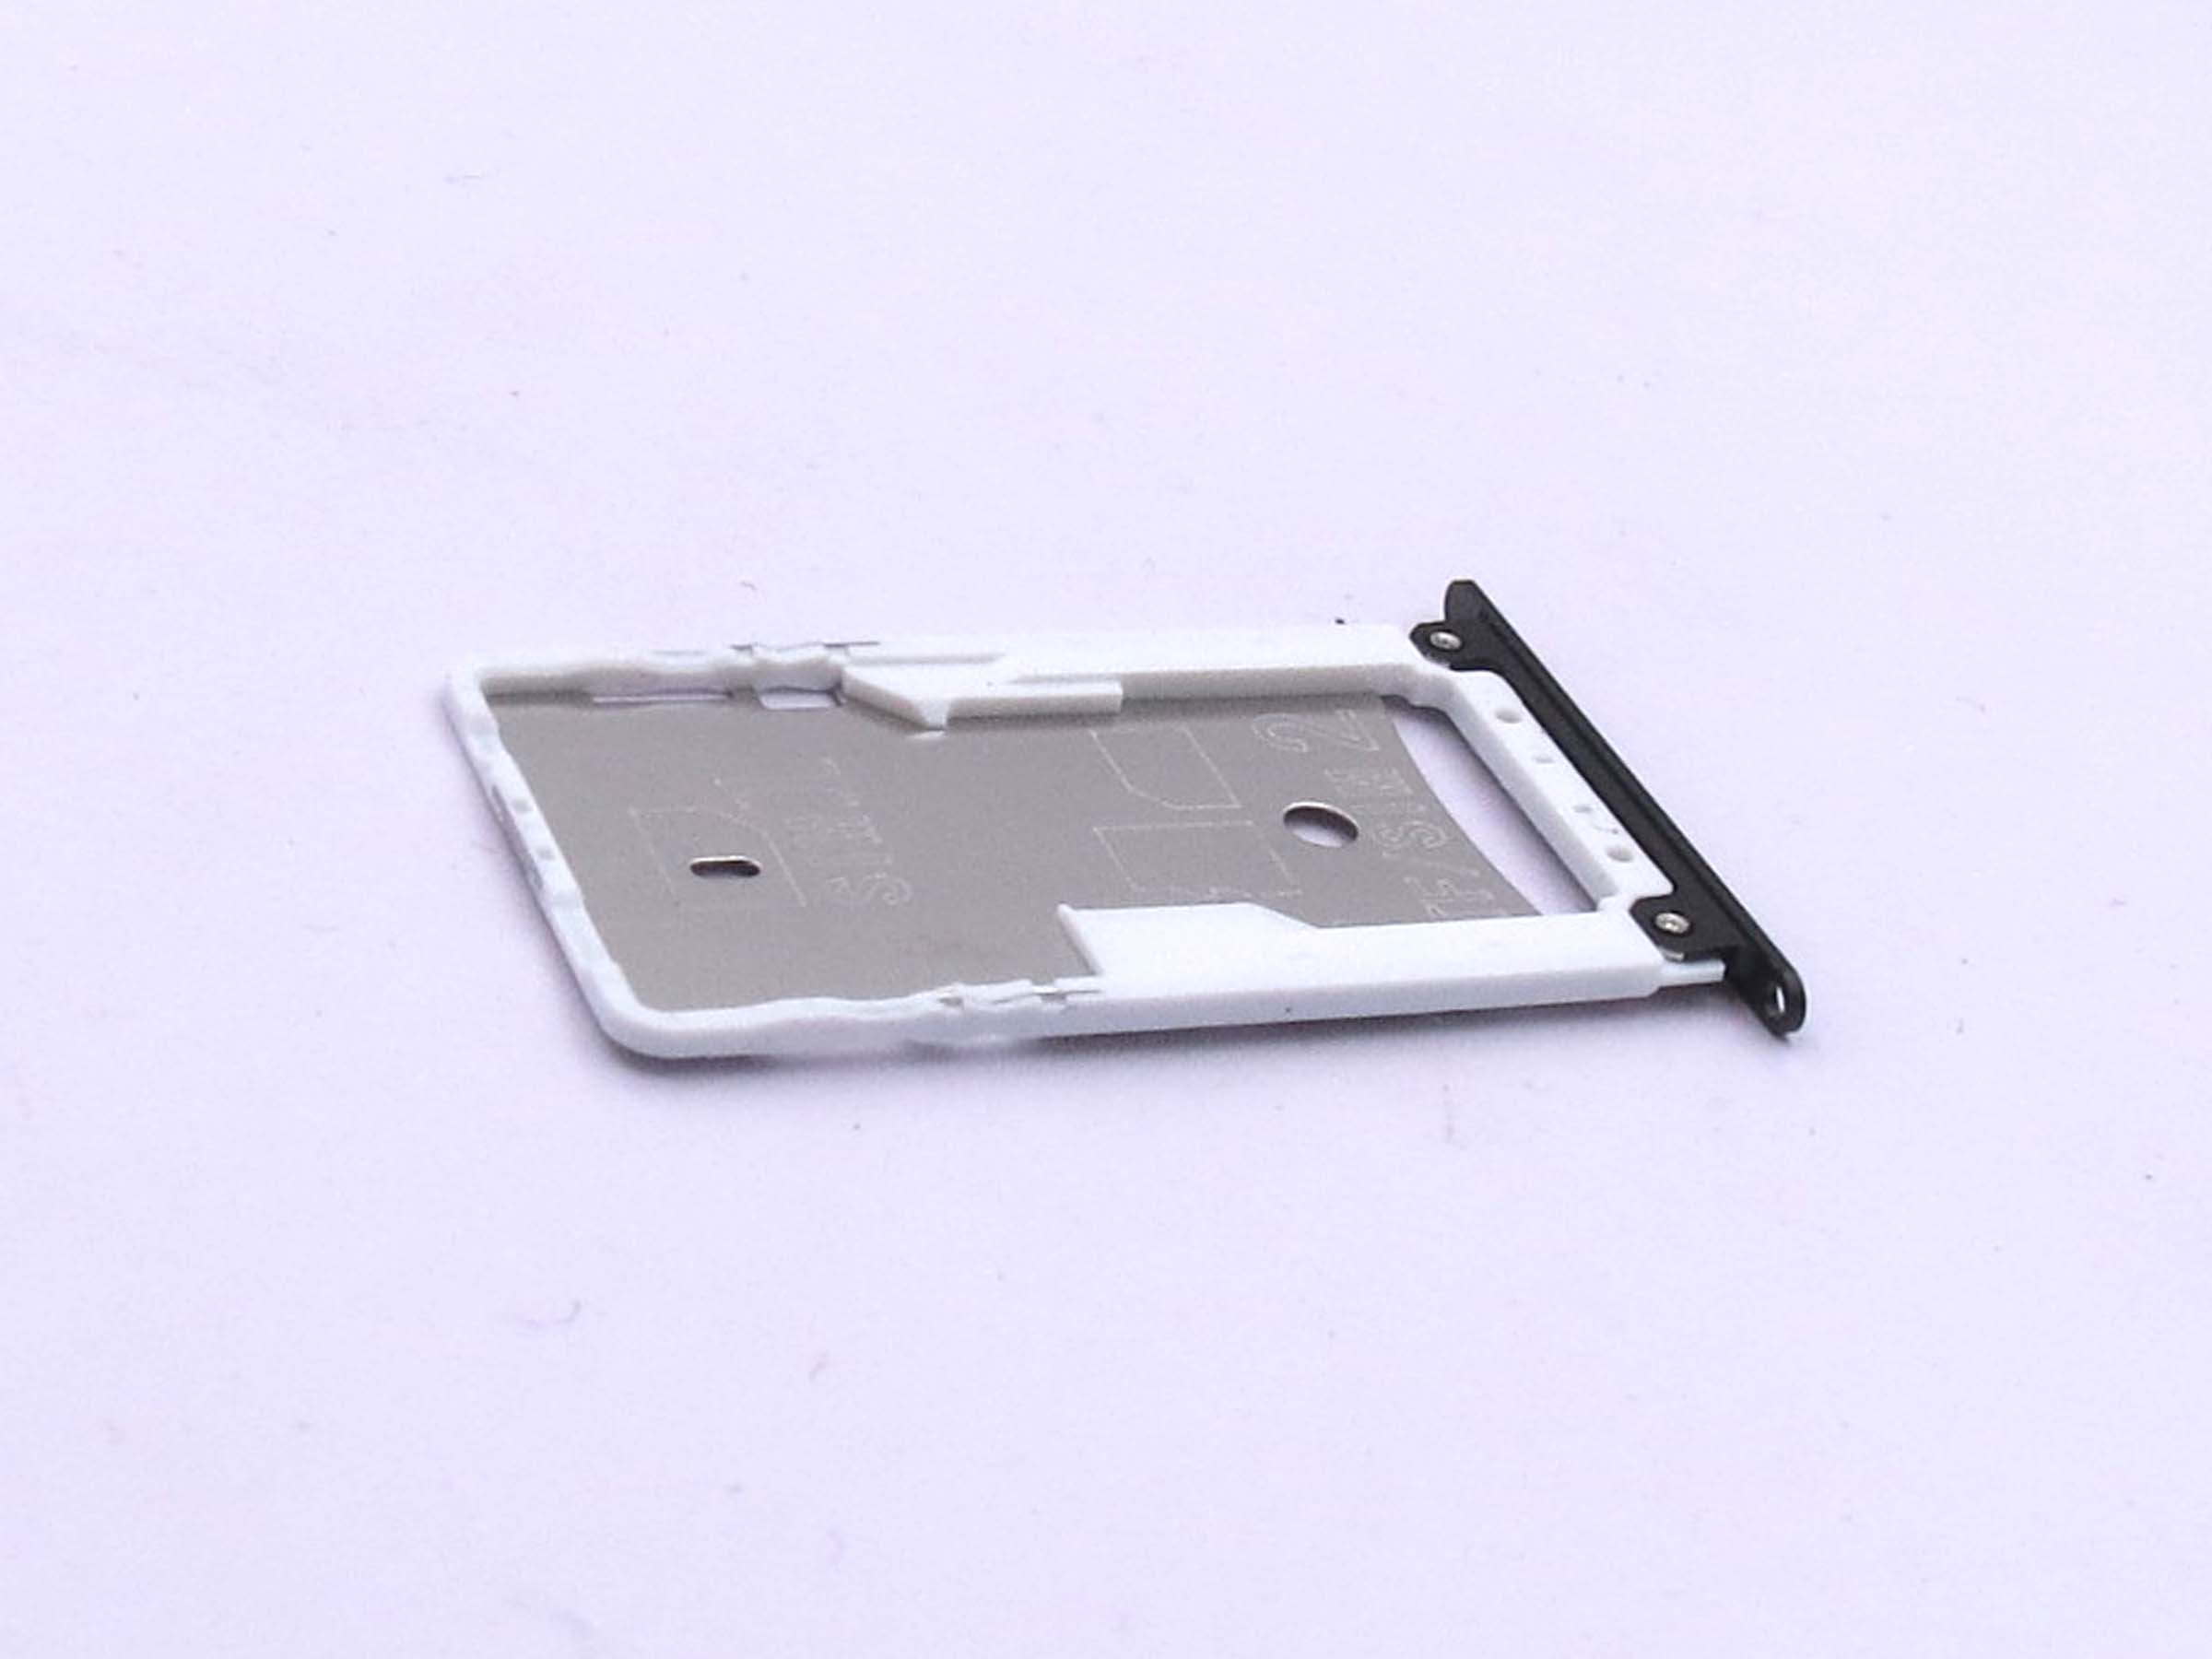 Original Dual Sim Card Slot Tray Holder for Redmi Note 4X-Black&Gray&Pink&Gold